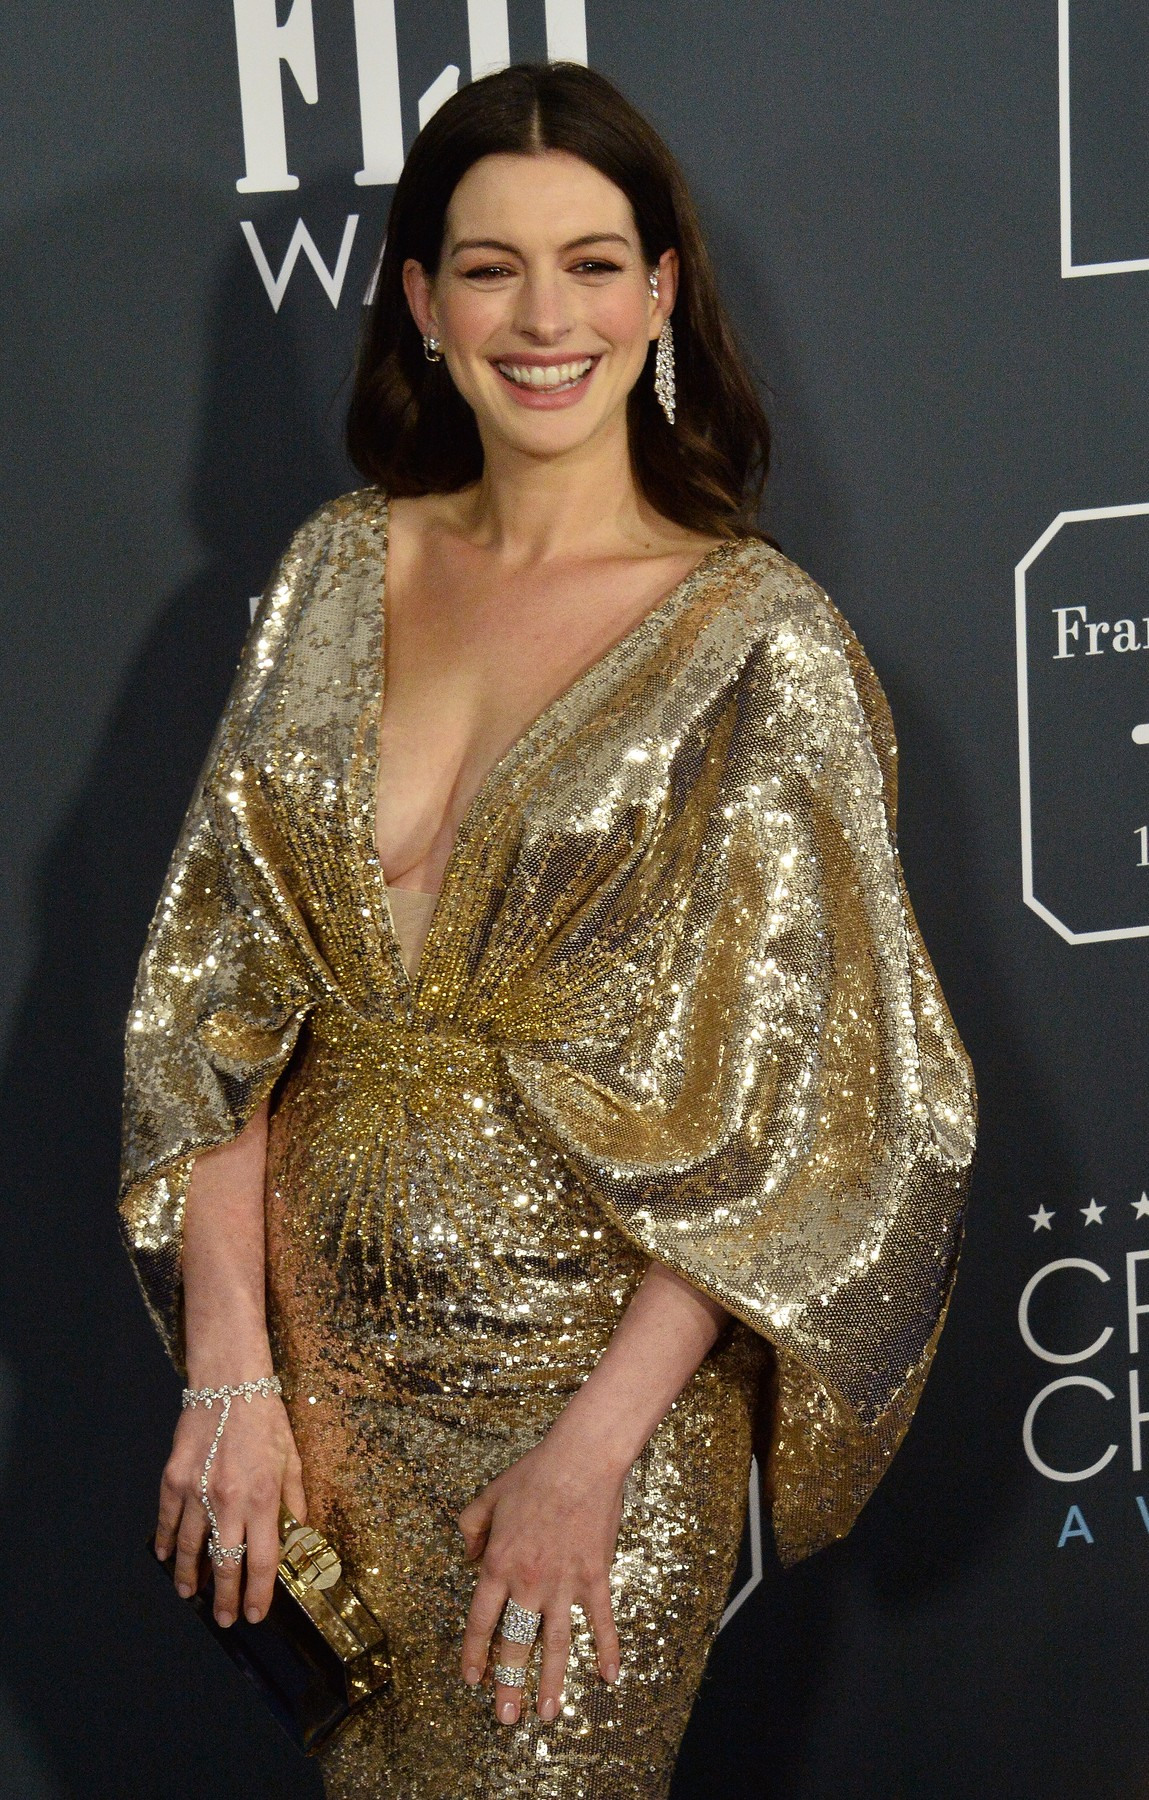 Actress Anne Hathaway attends the 25th annual Critics' Choice Awards at Barker Hanger in Santa Monica, California on Sunday, January 12, 2020. Photo by /UPI, Image: 492386058, License: Rights-managed, Restrictions: , Model Release: no, Credit line: JIM RUYMEN / UPI / Profimedia